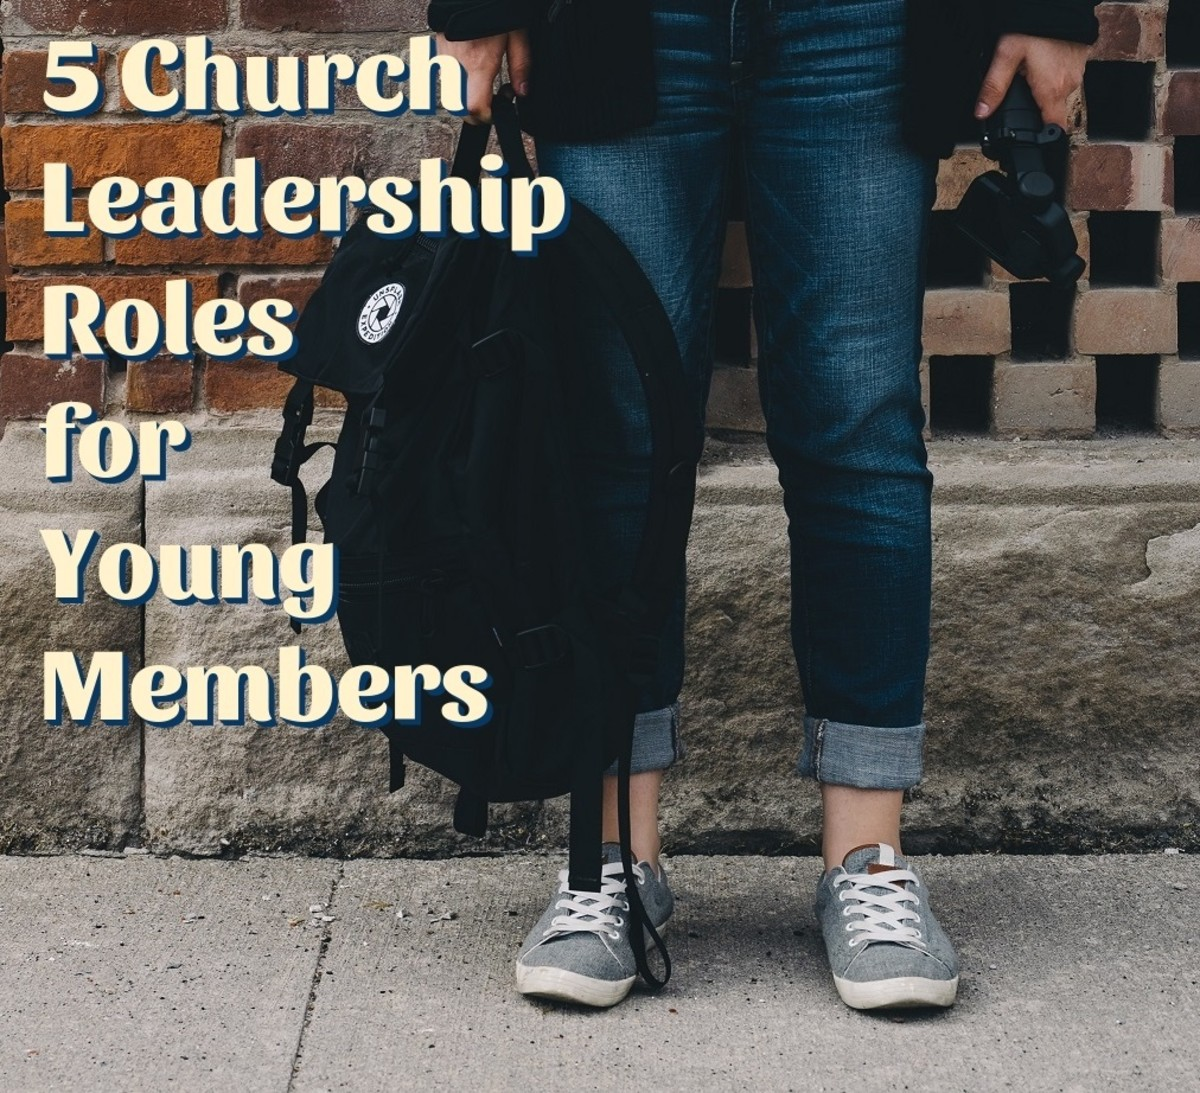 Five Church Leadership Roles for Young Members